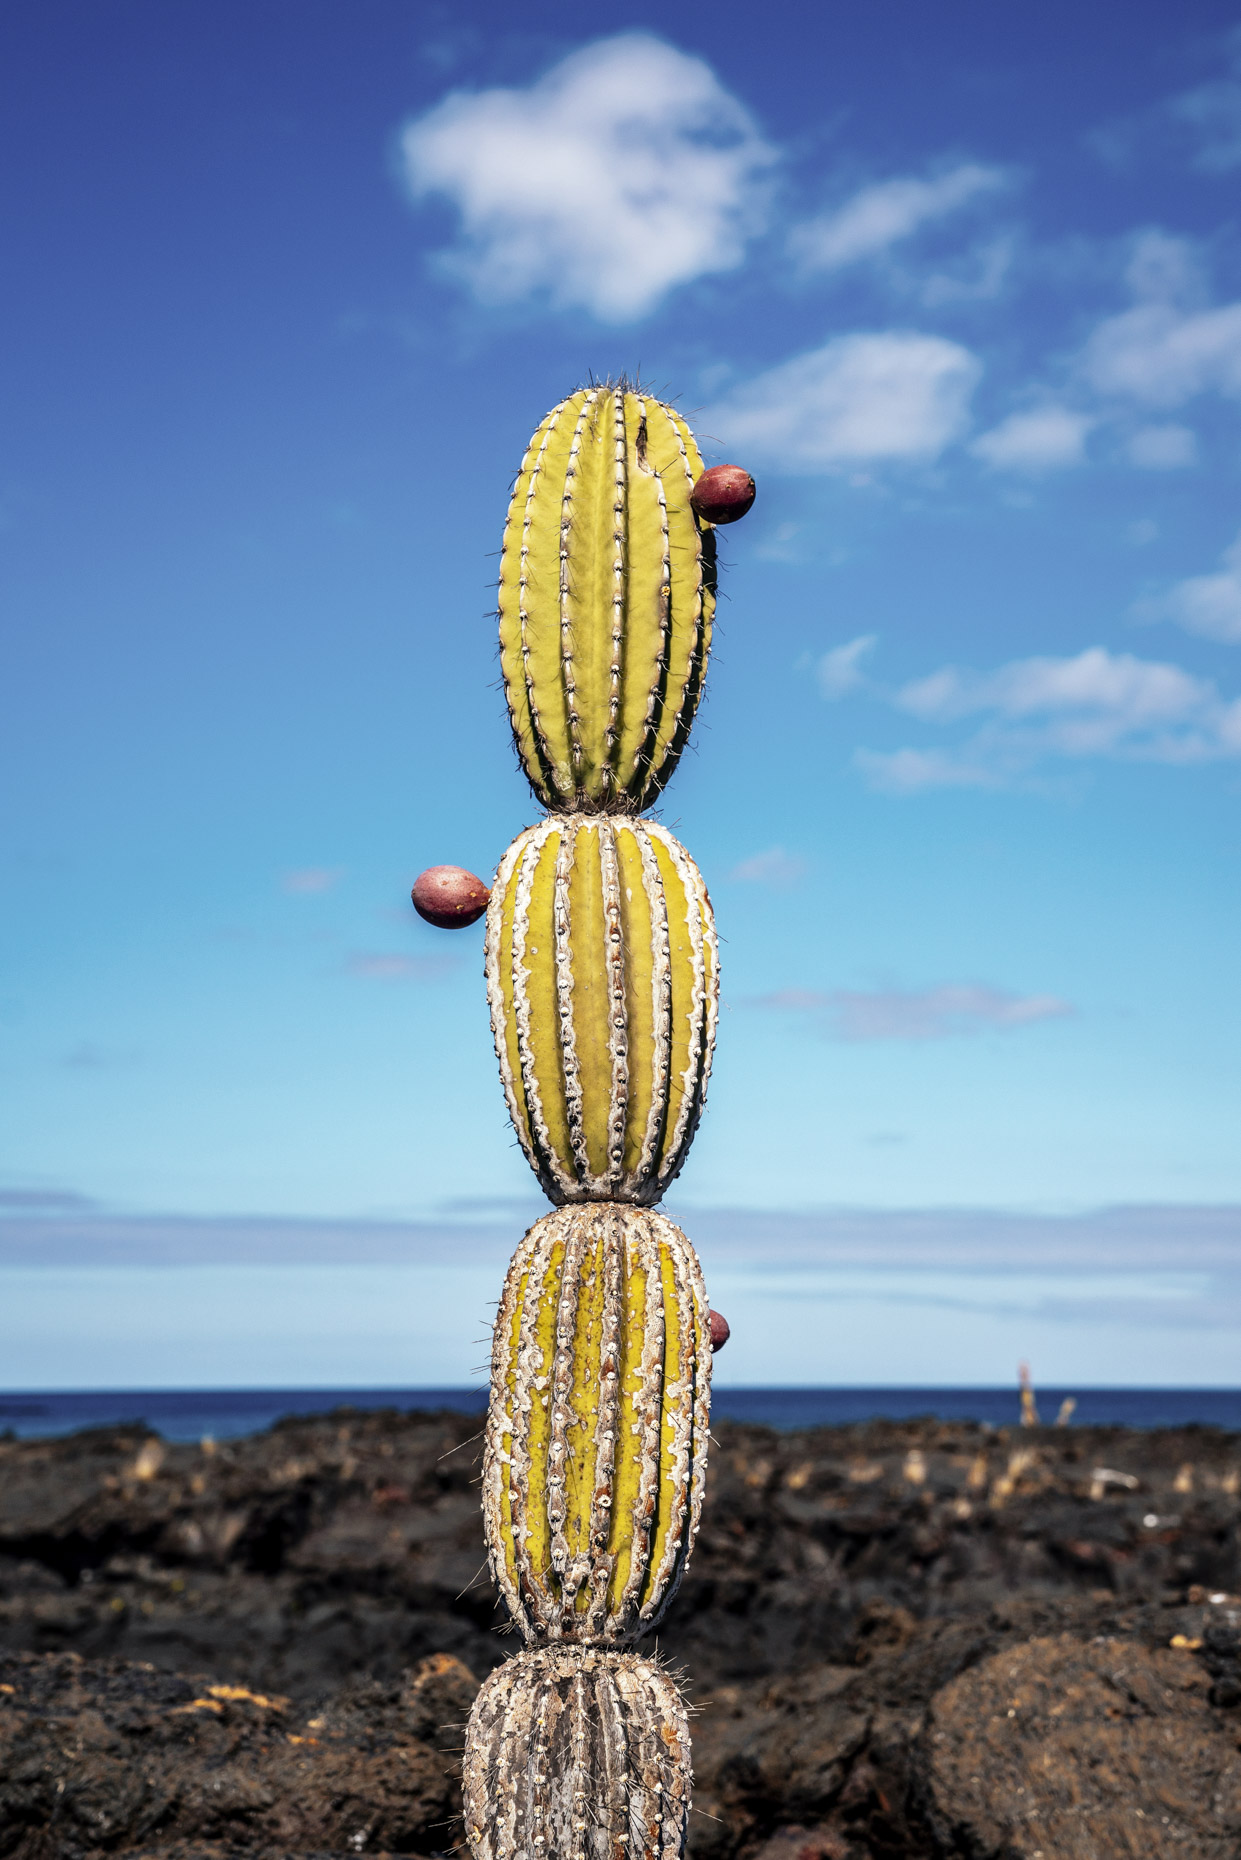 Cactus with fruit in lava field in Galapagos Ecuador